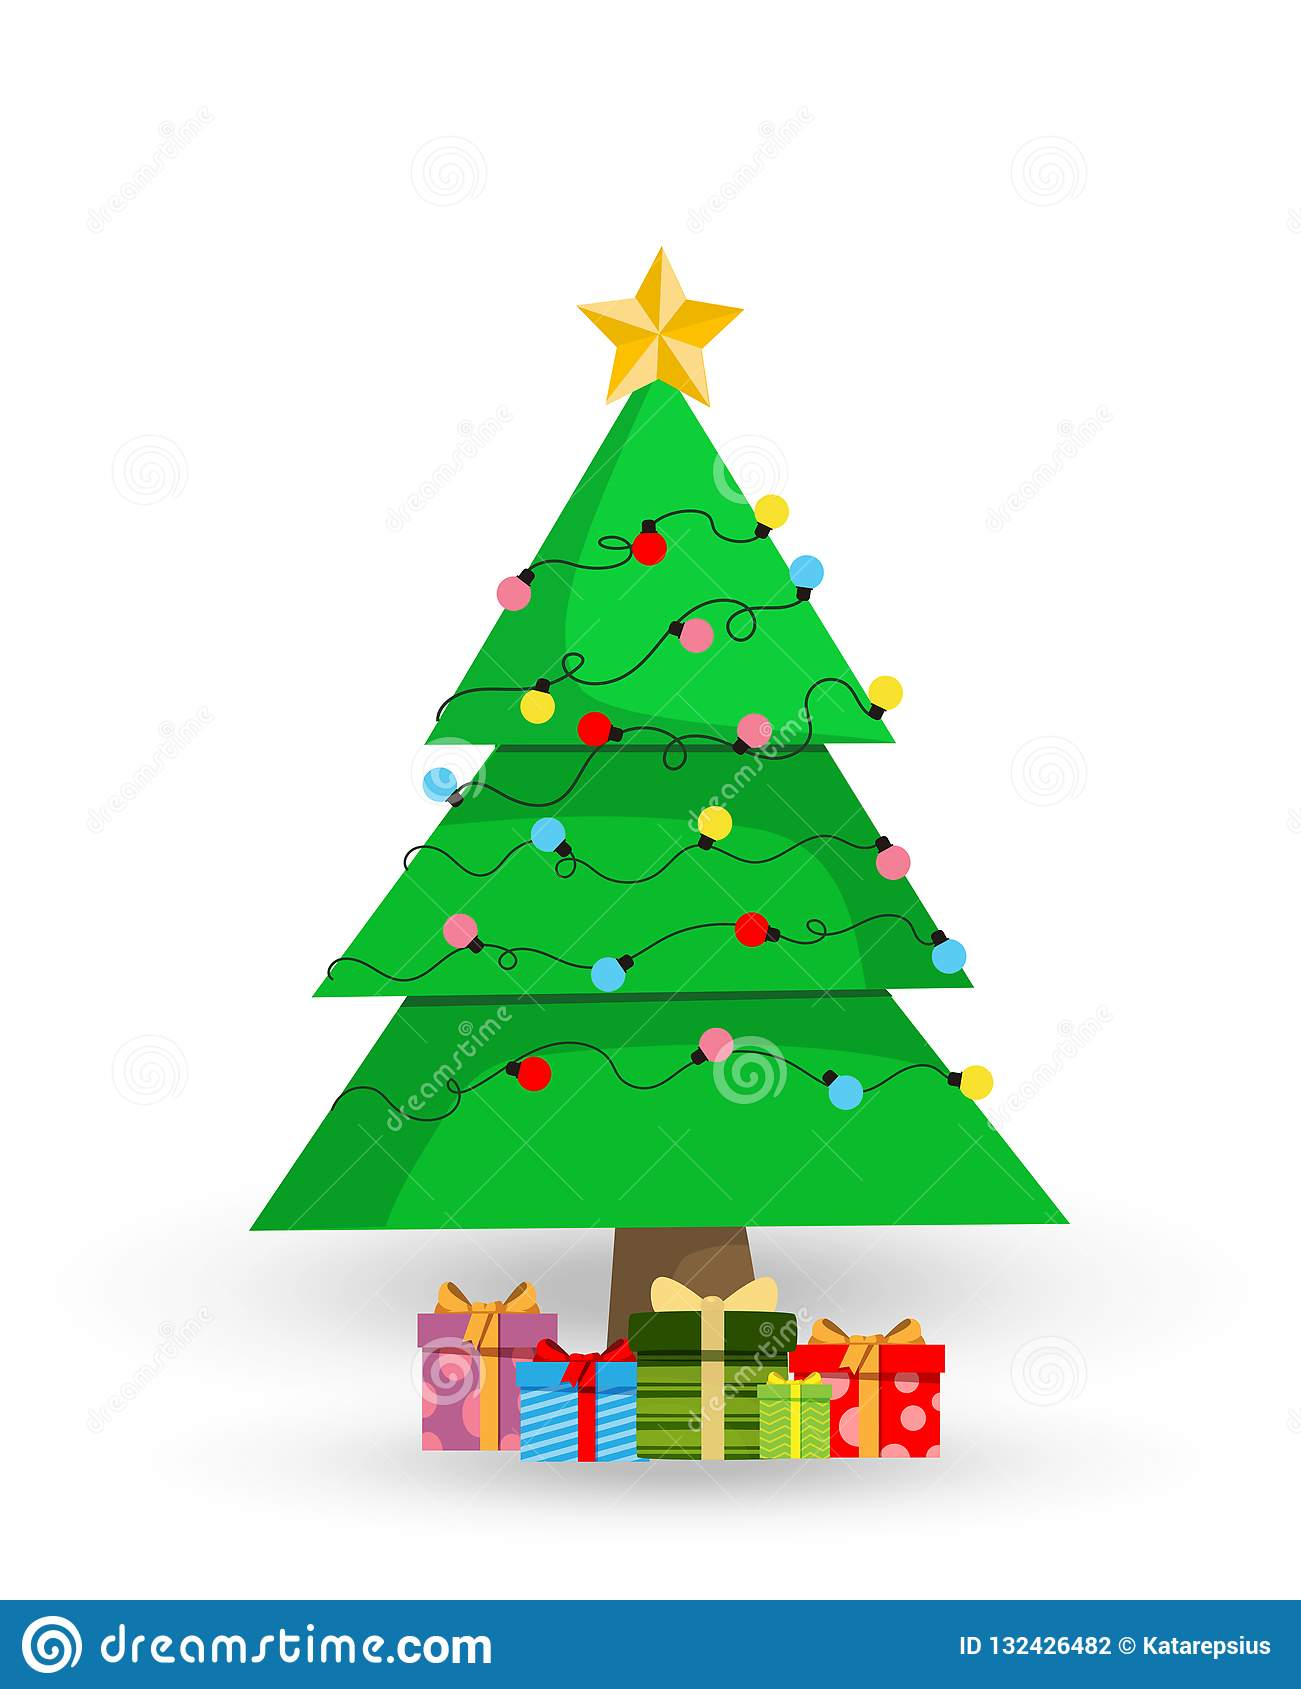 Cartoon Christmas Presents Tree Stock Illustrations 6 355 Cartoon Christmas Presents Tree Stock Illustrations Vectors Clipart Dreamstime I told the downstairs neighbors they had to take their tree down by new year's. https www dreamstime com cute cartoon decorated christmas fir tree gifts presents white cute cartoon decorated christmas fir tree many image132426482